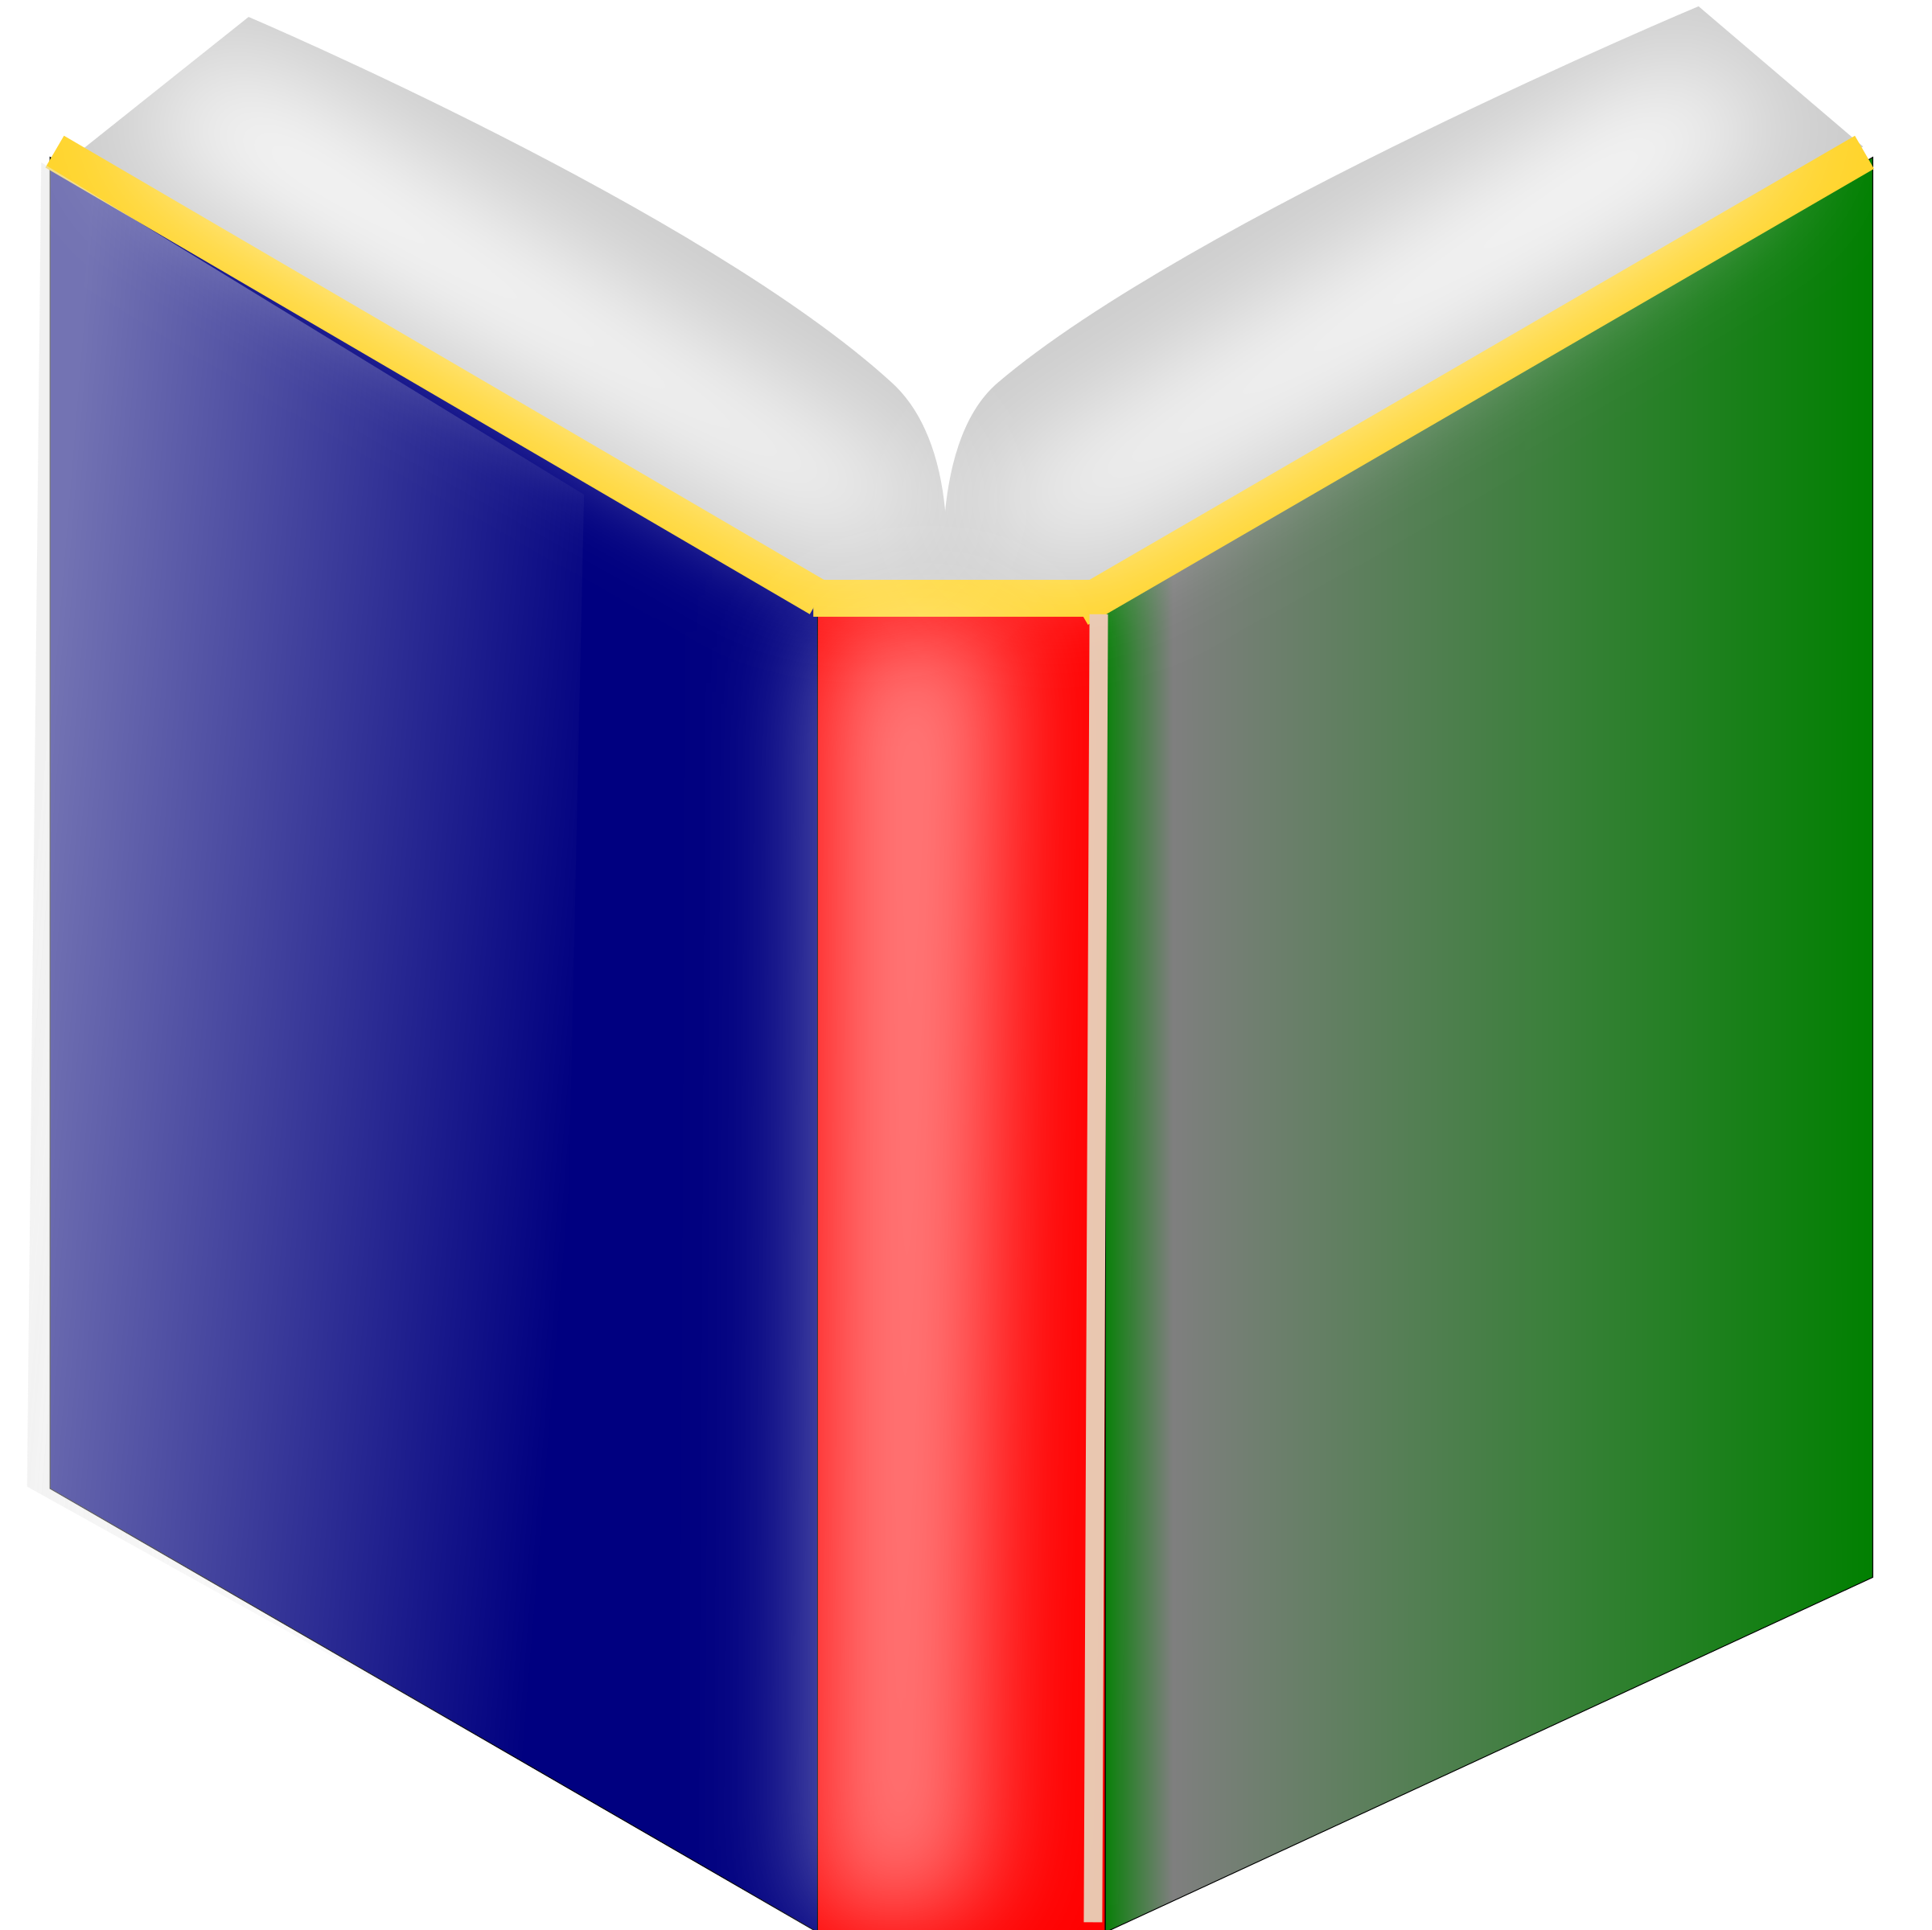 Transparent favicons books. Book with new fade